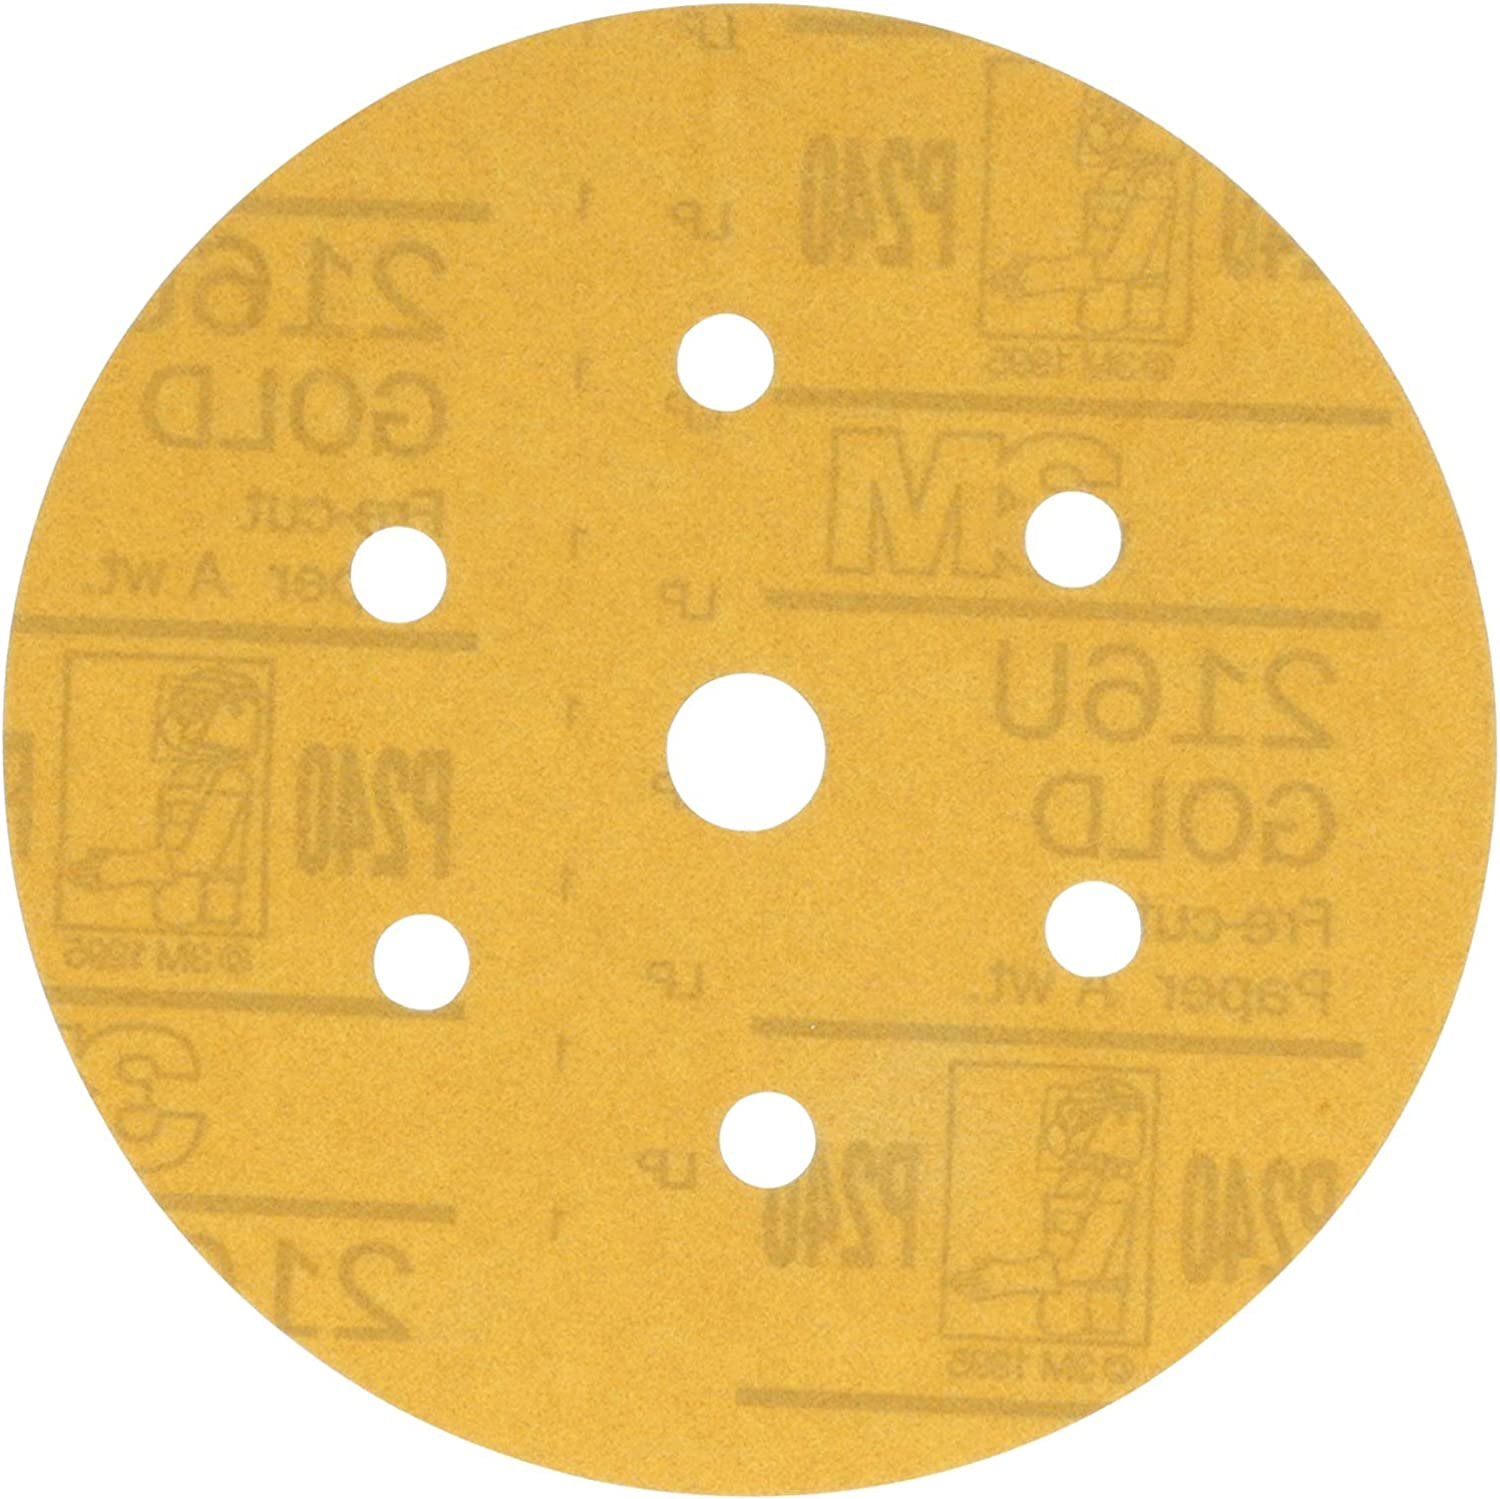 4 per case 3M 524 6 in x 1//2 in x 5//8 in Standard Abrasives S//C Unitized Wheel 852481